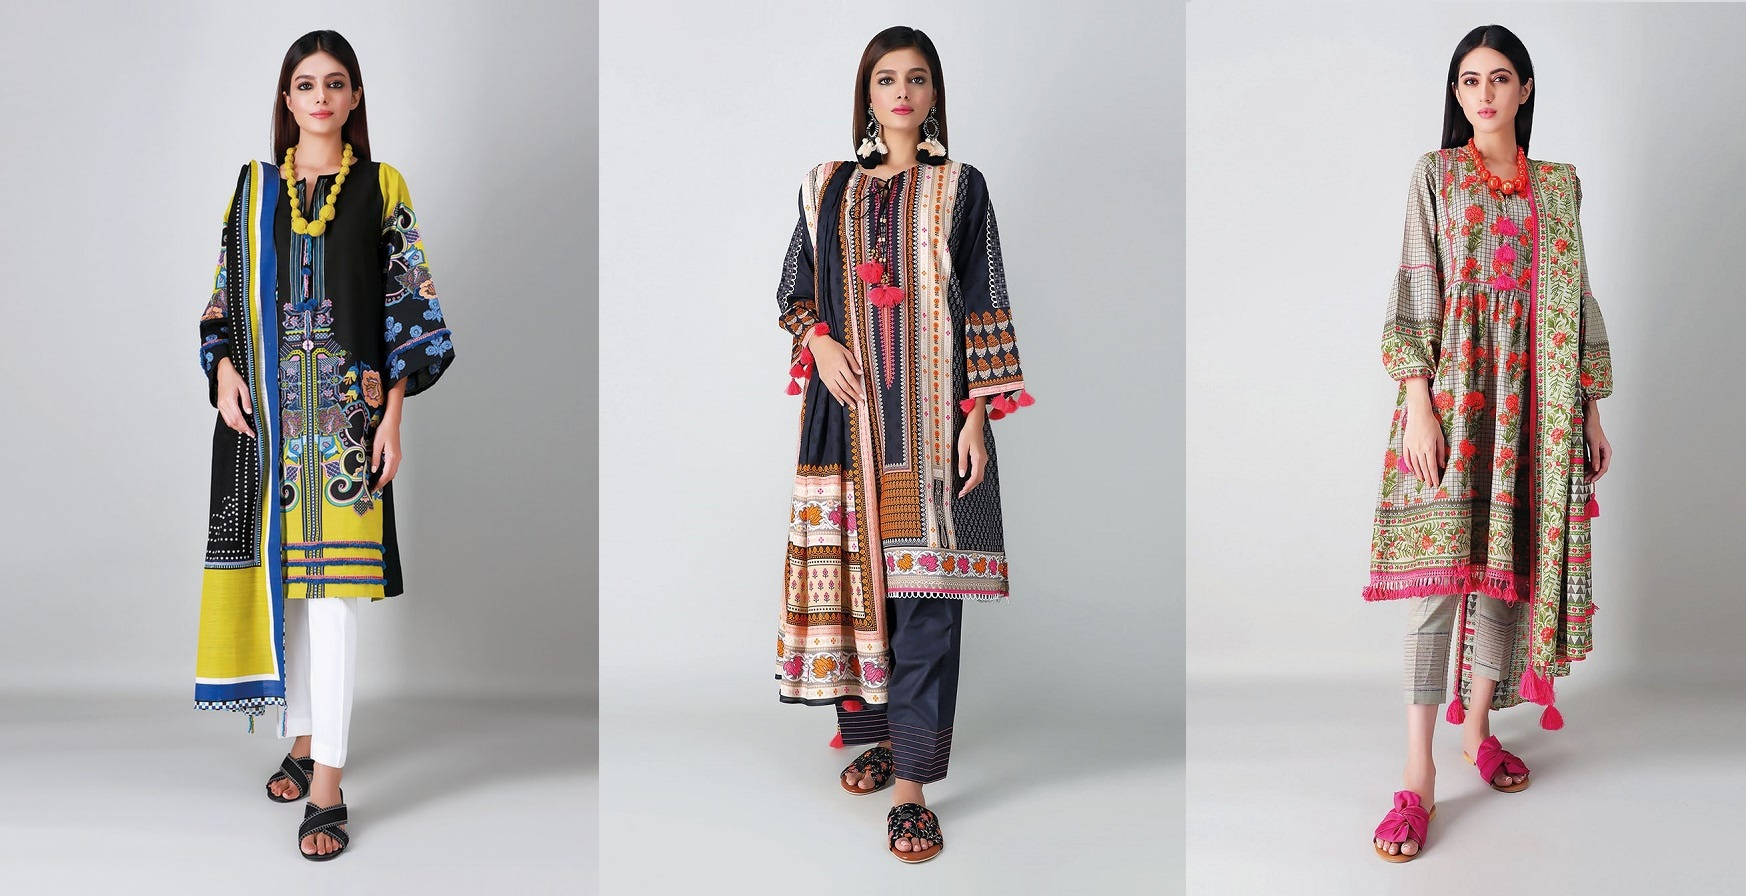 Latest Khaadi Winter Dresses Collection sylish Warm Suits